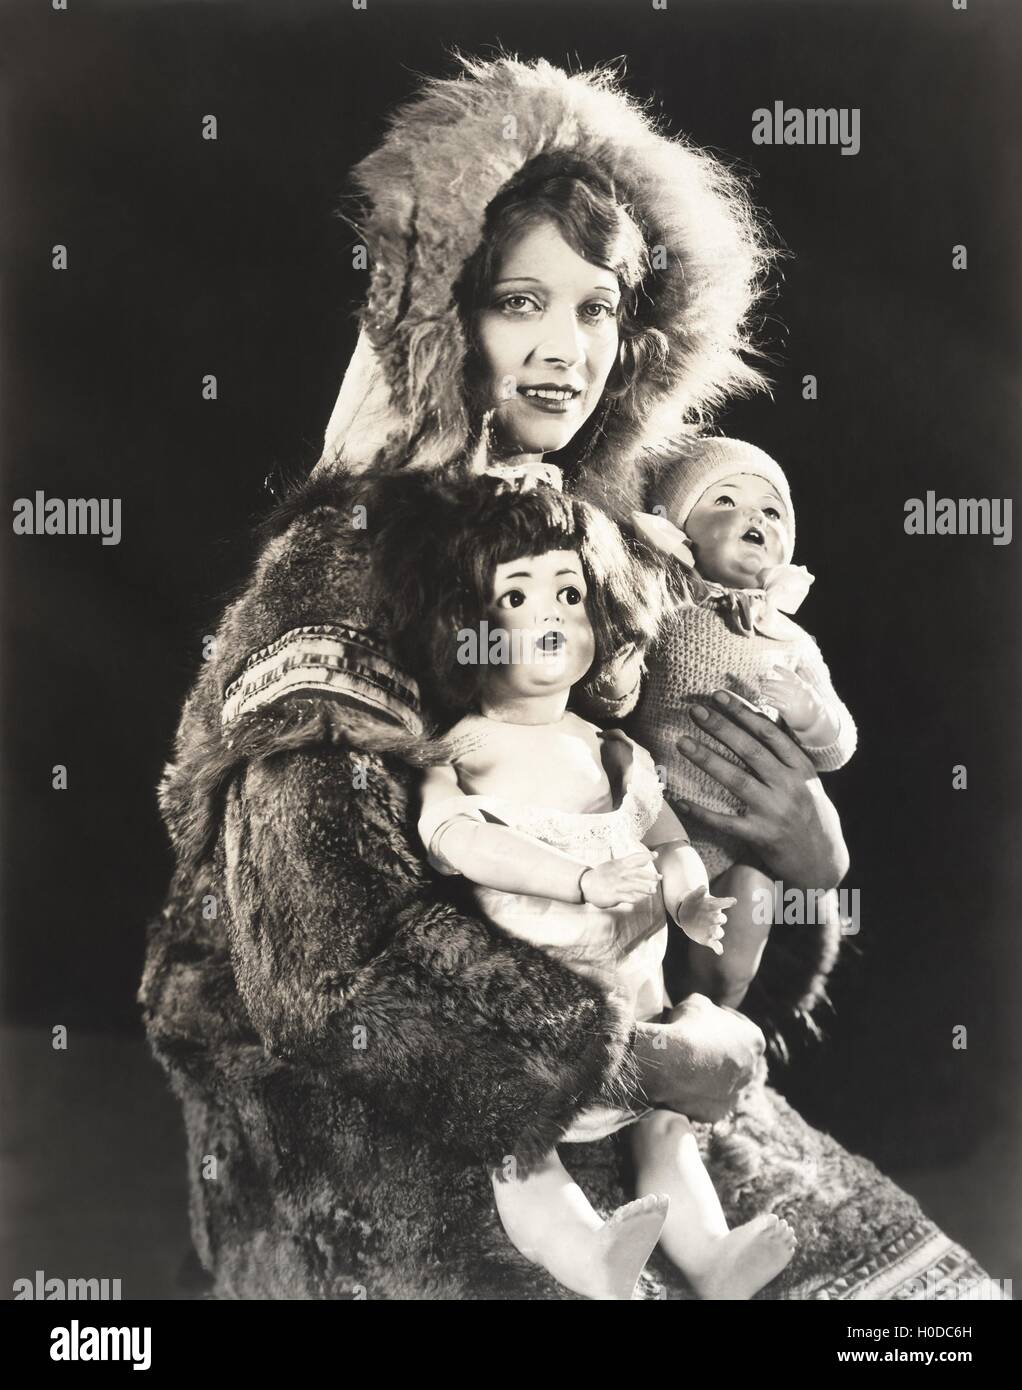 Women wearing Eskimo fur coat holding dolls - Stock Image